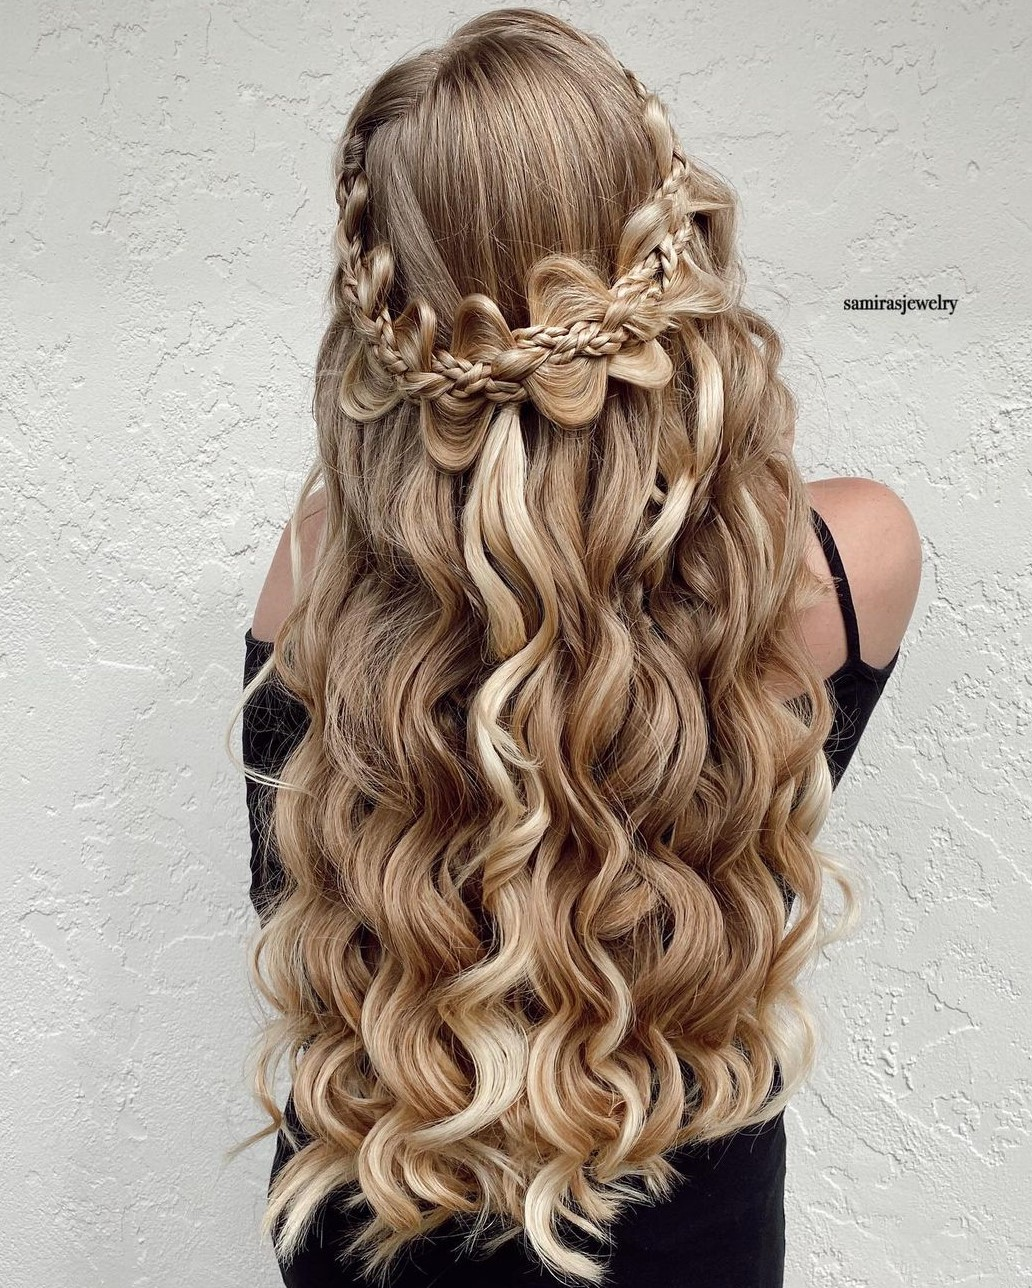 Half-Up Crown Braid for Curly Hair